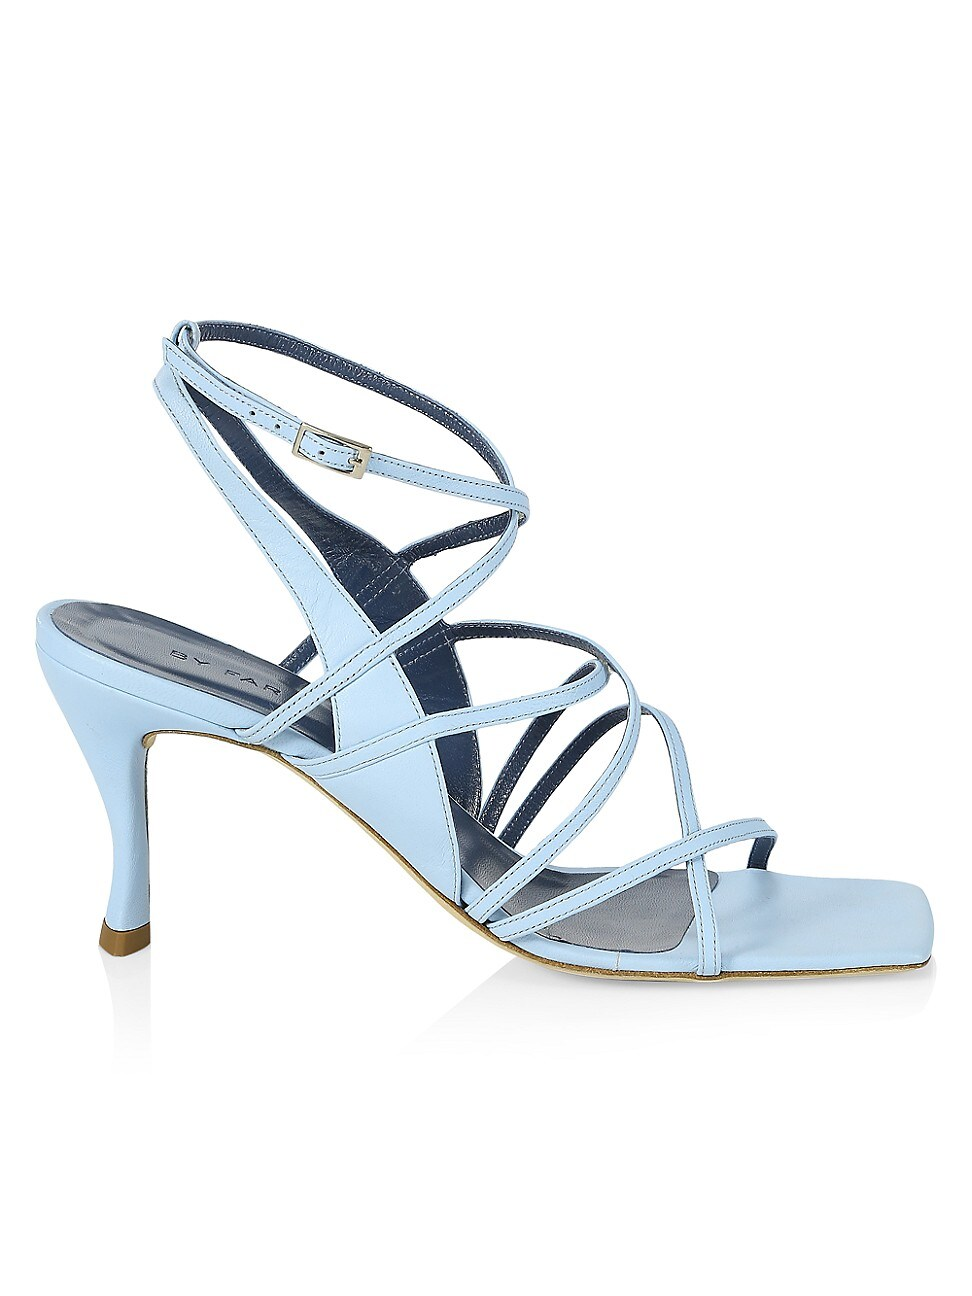 BY FAR WOMEN'S CHRISTINA STRAPPY LEATHER SANDALS